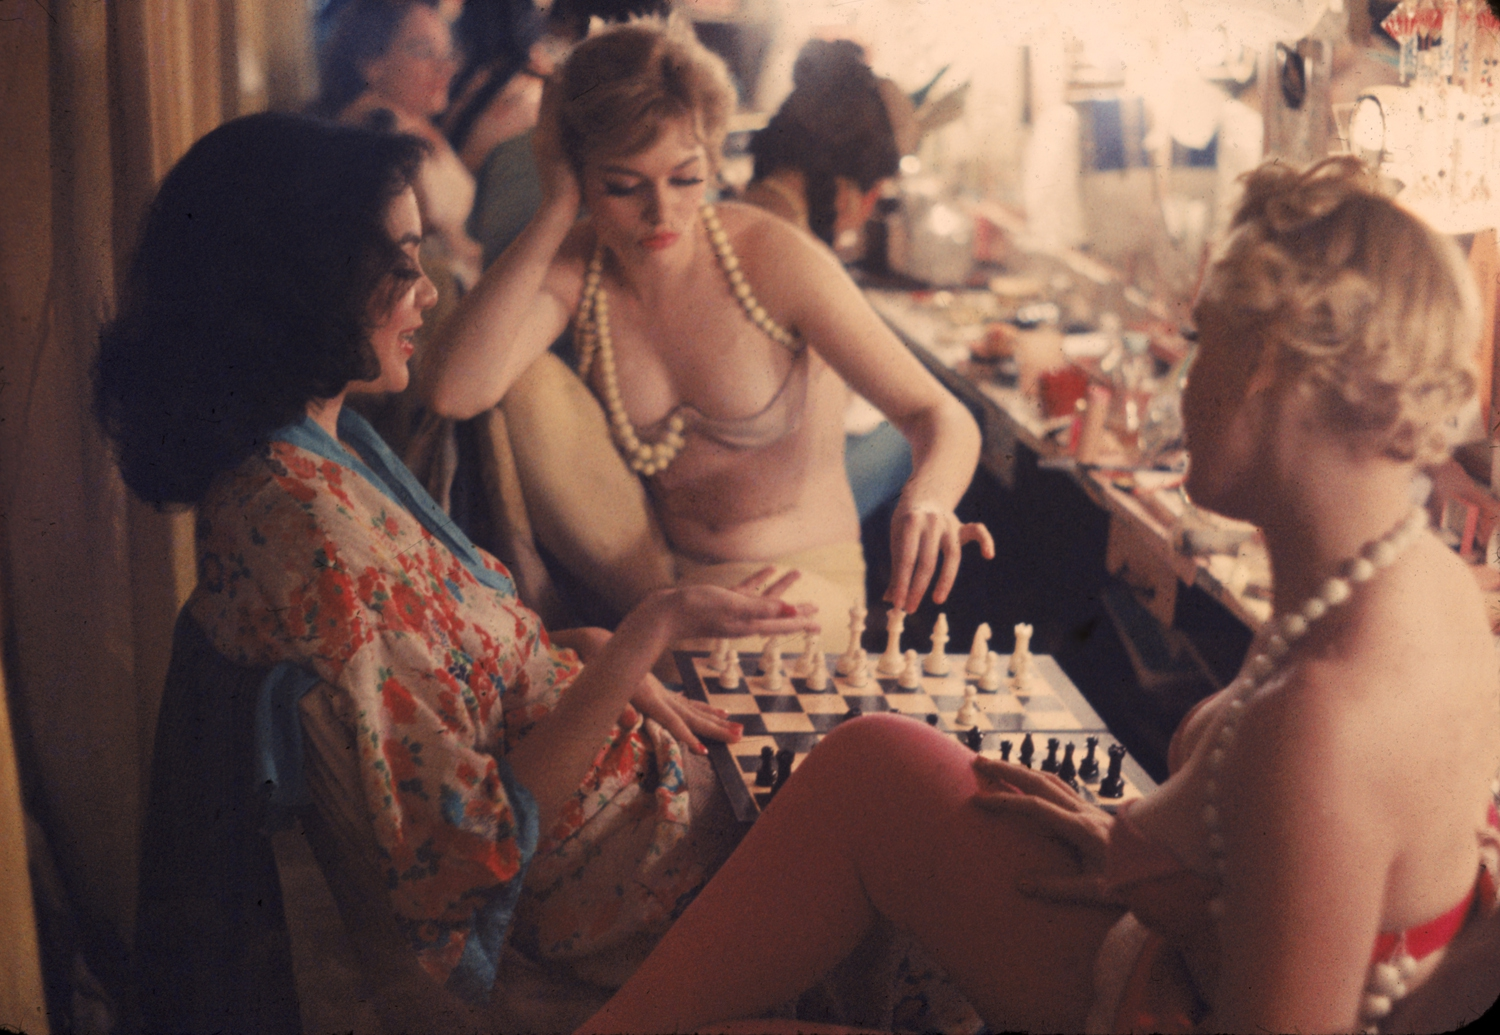 Between scenes in the show at New York's Latin Quarter, Pat Farrell prepares to make a chess move. Opponent (right) is Grace Sundstrom. Kibitzing at left is Shirley Forrest, an ex-schoolteacher.